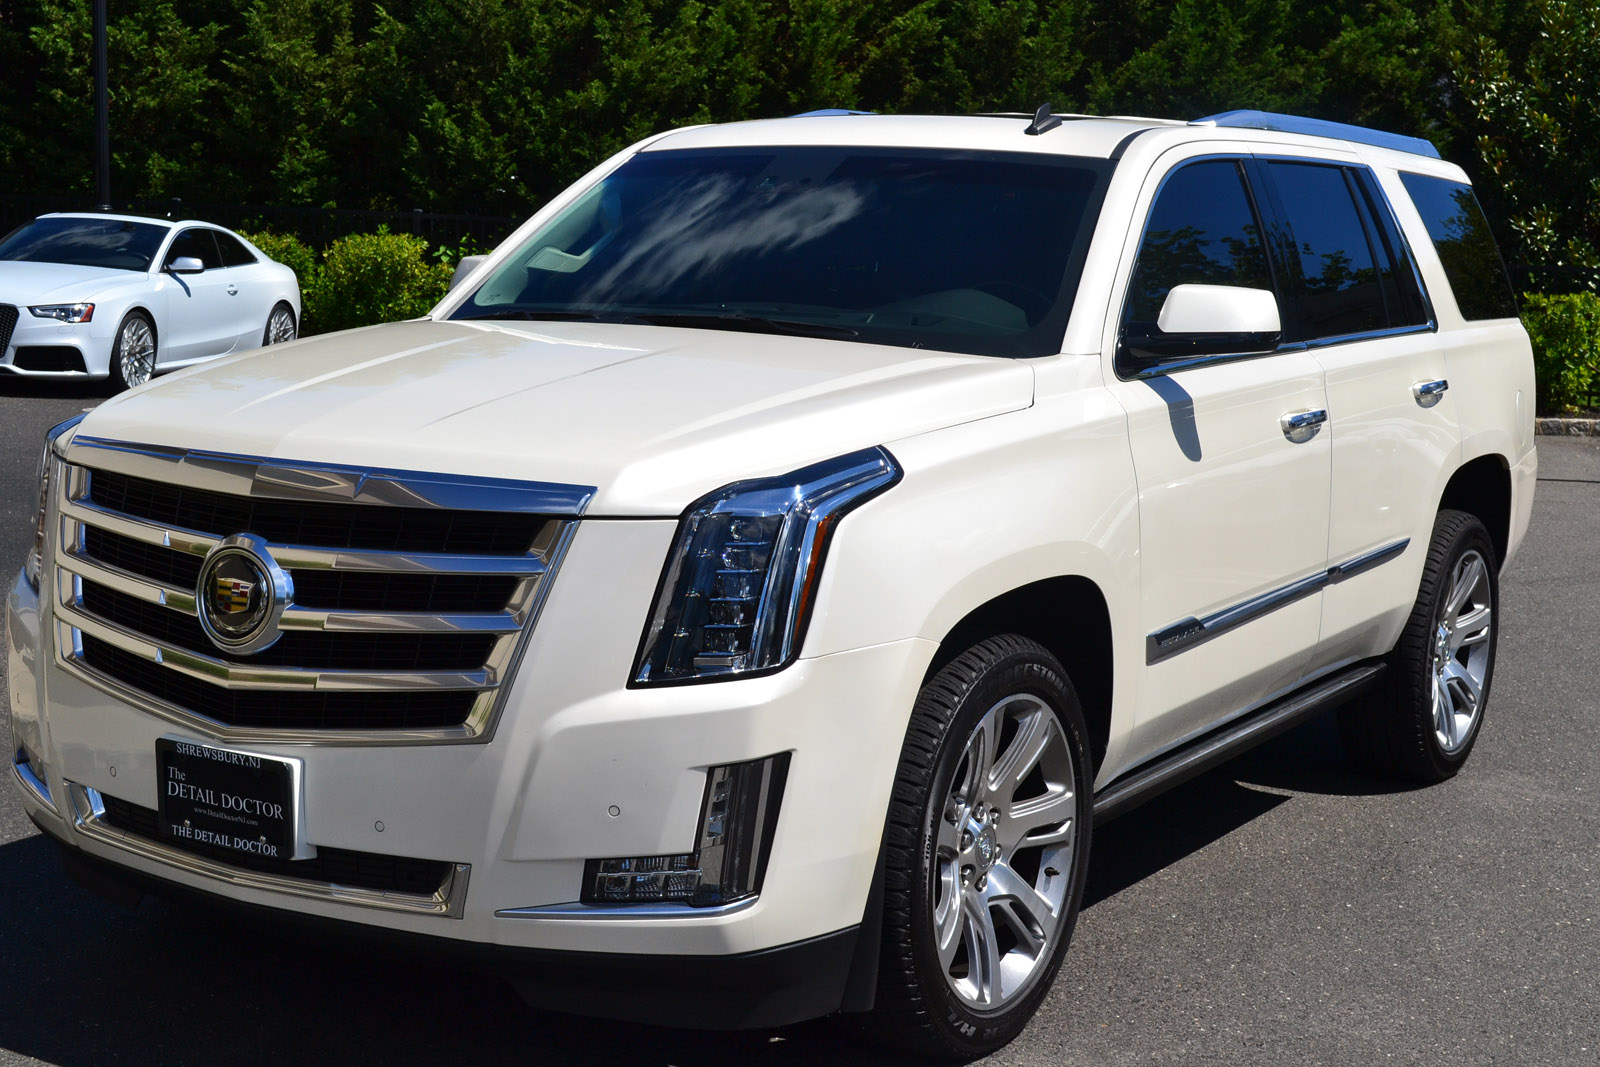 Used Suv For Sale By Owner >> 2015 Cadillac Escalade Premium Pre-Owned